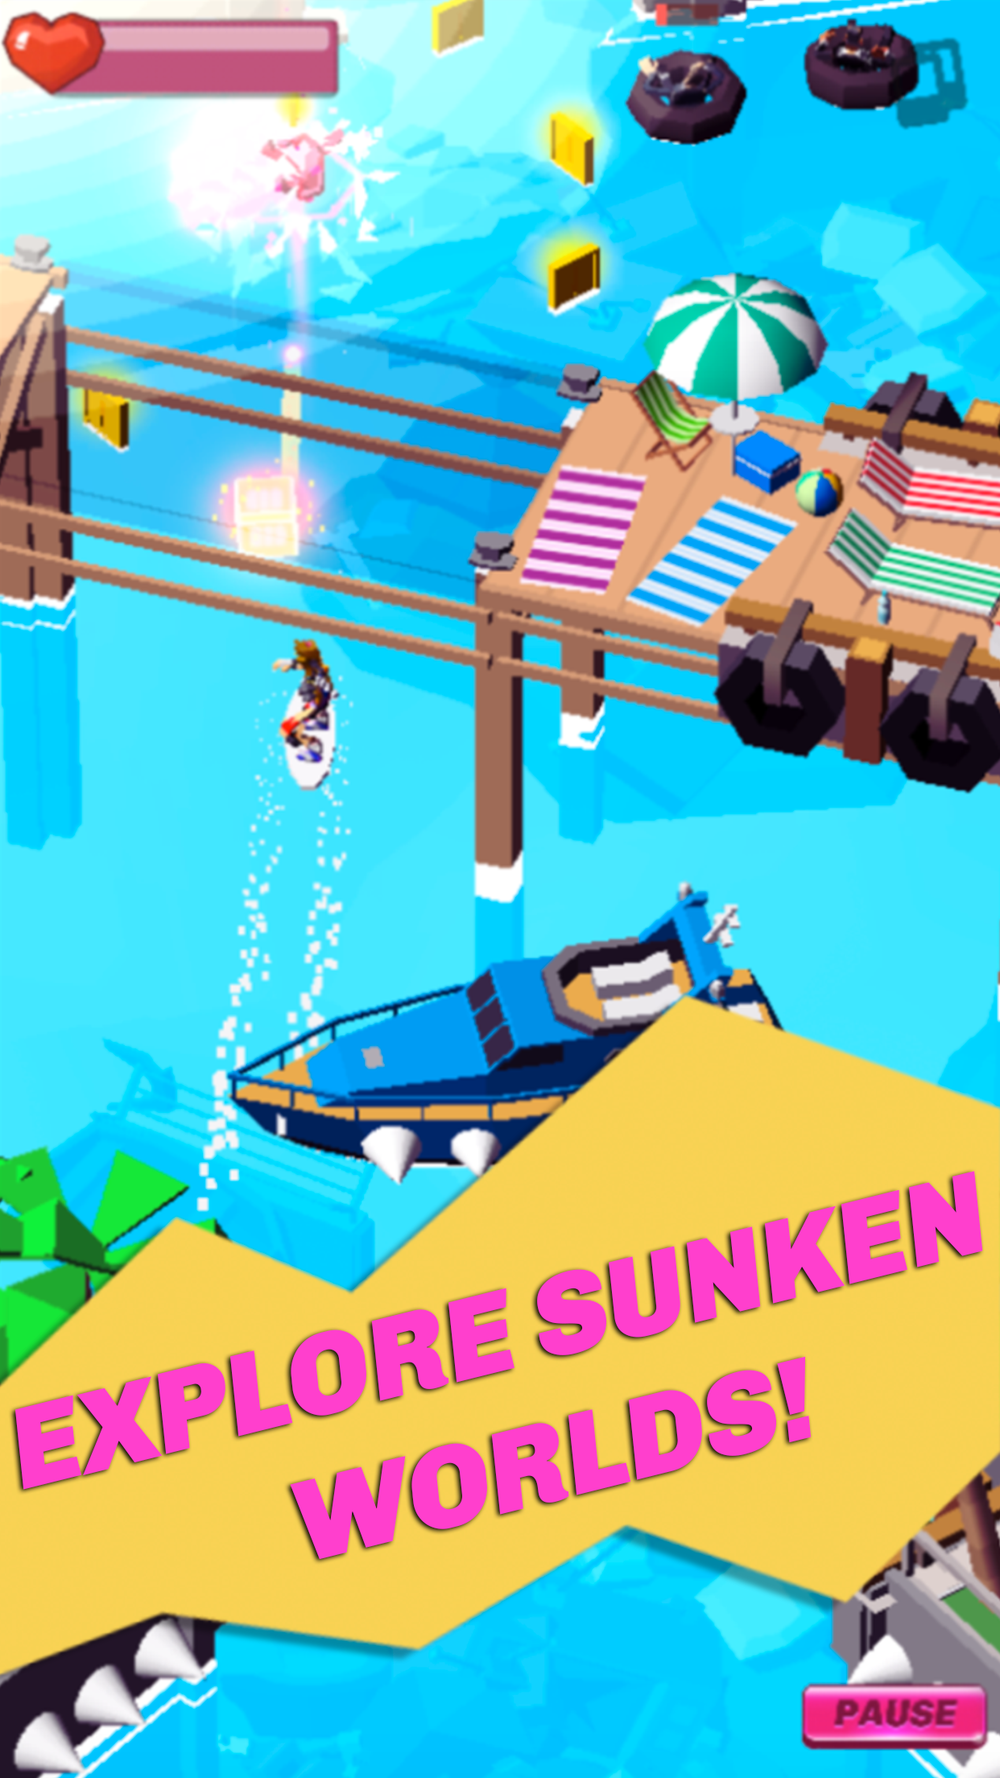 2_screenshot_sunkenWorlds.png